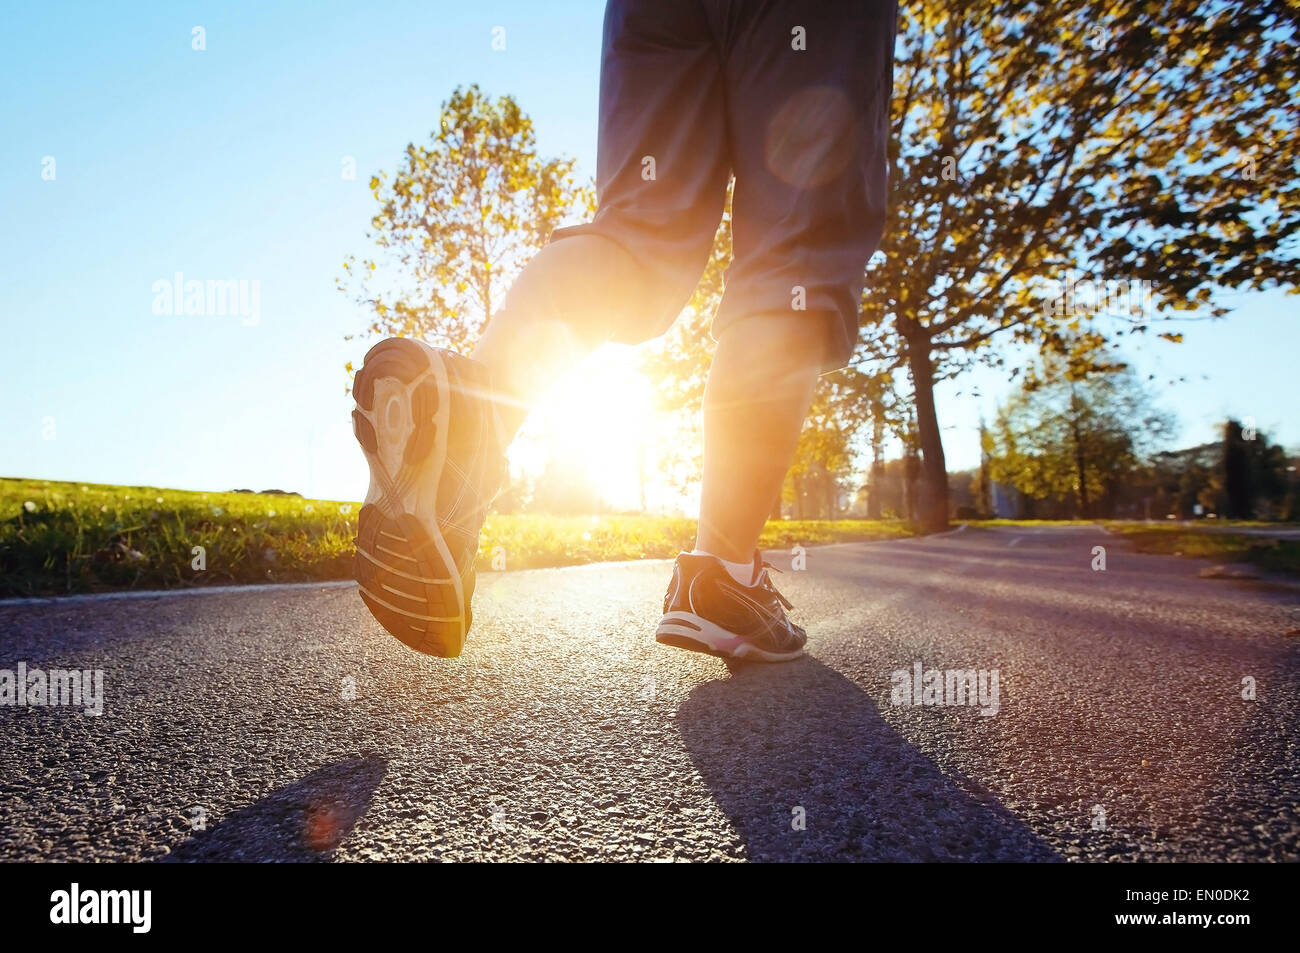 close up feet of runner at sunset - Stock Image